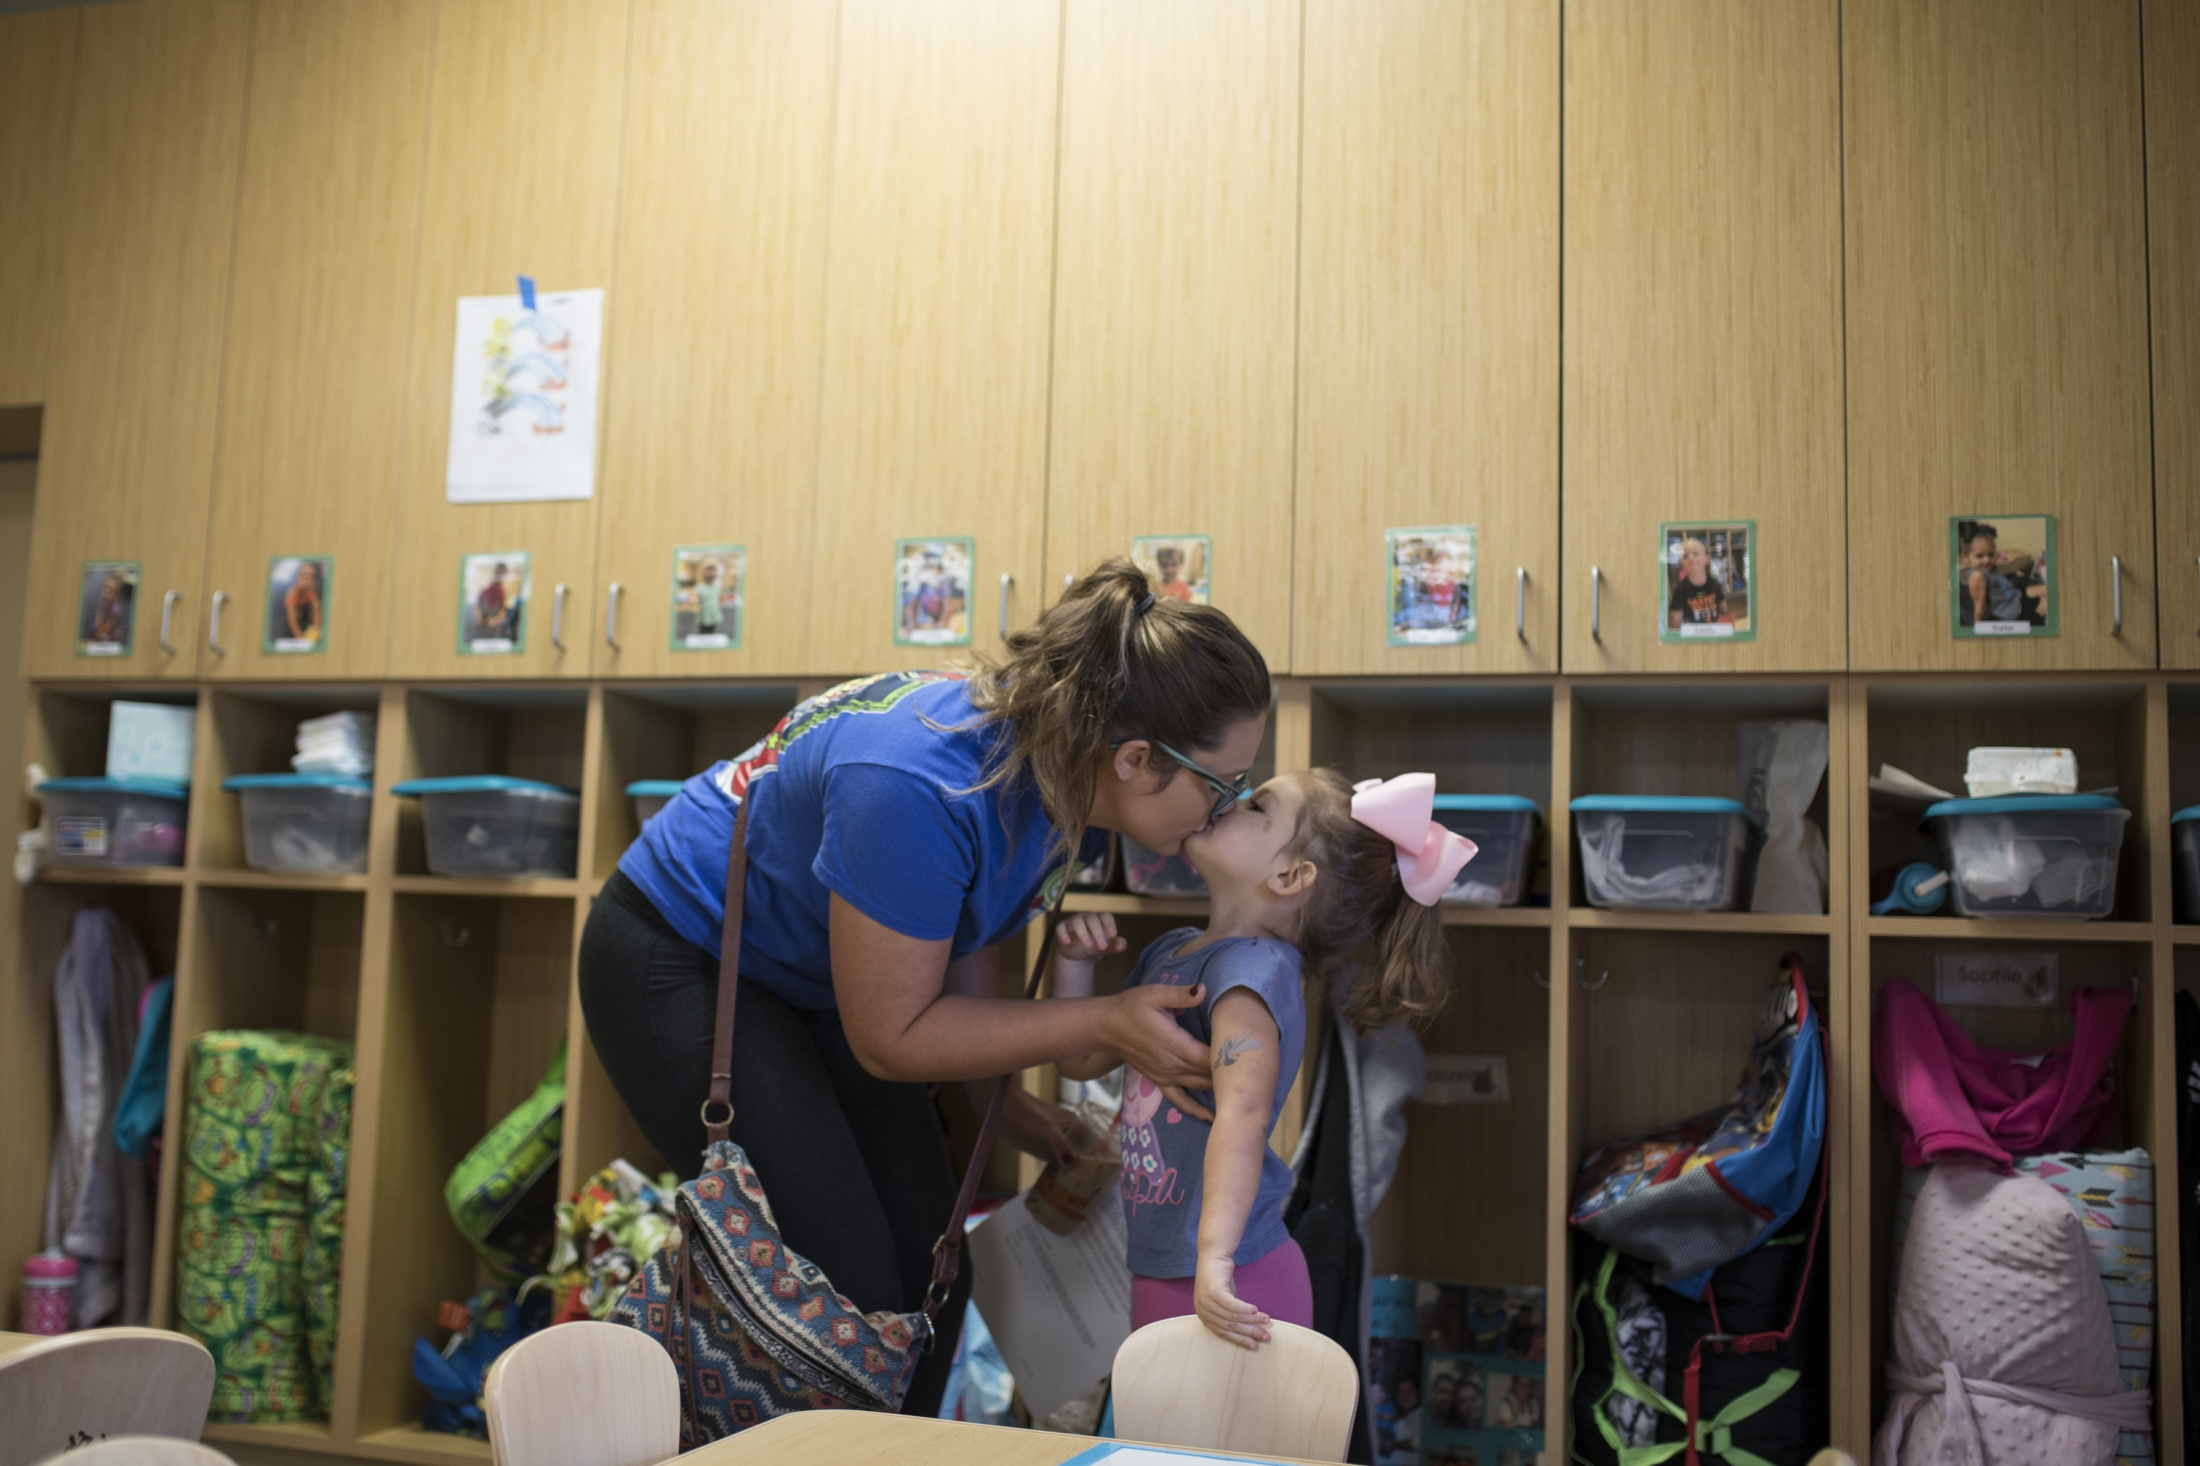 Haylee Carter kisses her daughter, Sophie Patterson, as she drops her off at her daycare class. Carter is a part time employee at the Hagy Center for Young Children and is a student at Amarillo College studying early childhood education. The daycare facility gives a break to students with children to make it affordable for families who are pursuing higher education.